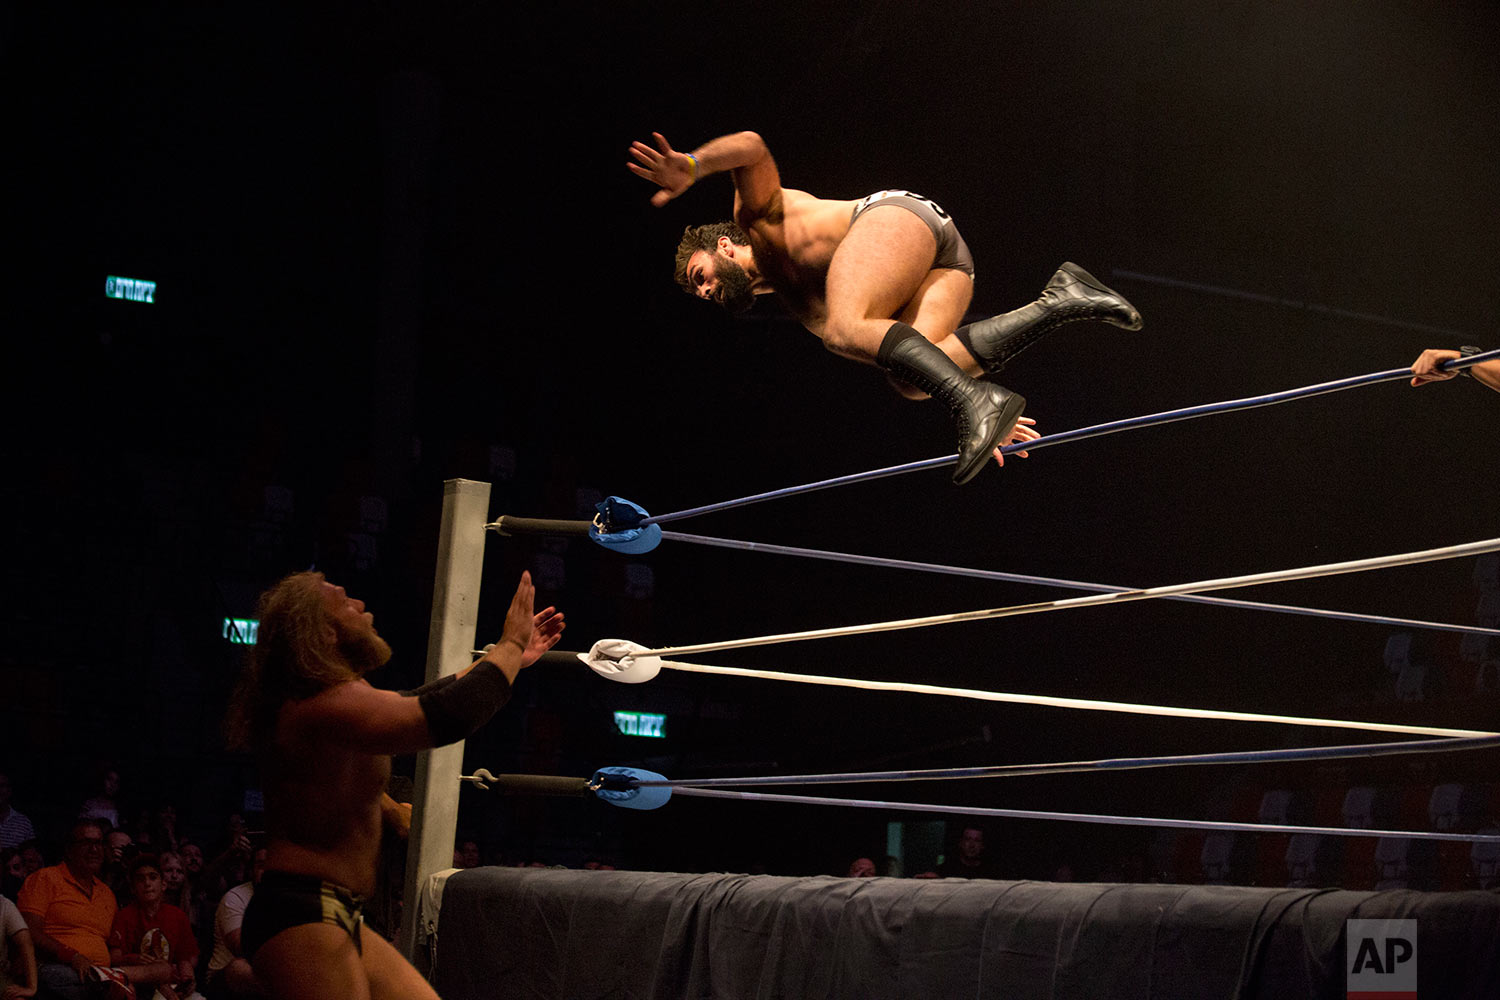 Wrestler David Starr jumps towards Juran Simmons during The Rage Wrestling Mega Show in Tel Aviv, Israel, Sunday, July 9, 2017.(AP Photo/Ariel Schalit)